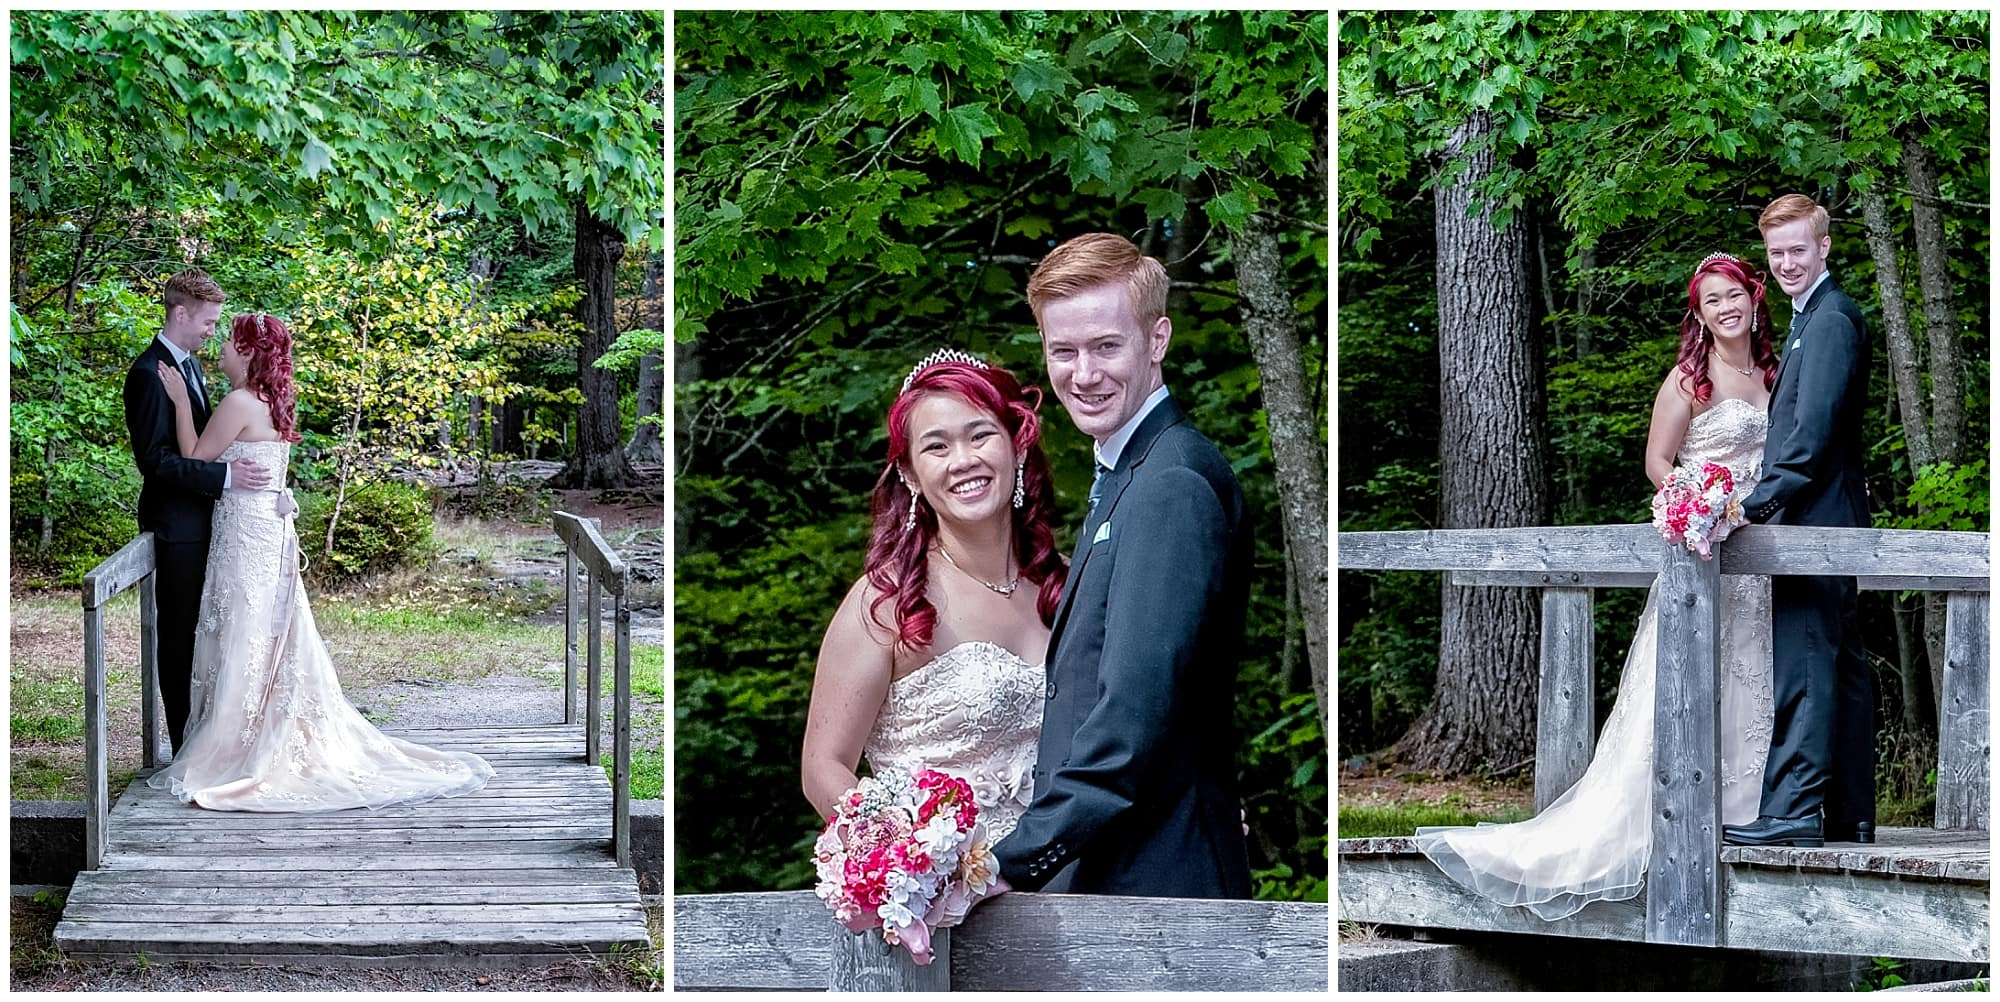 The bride and groom have their wedding photos done at Point Pleasant Park in Halifax, NS.